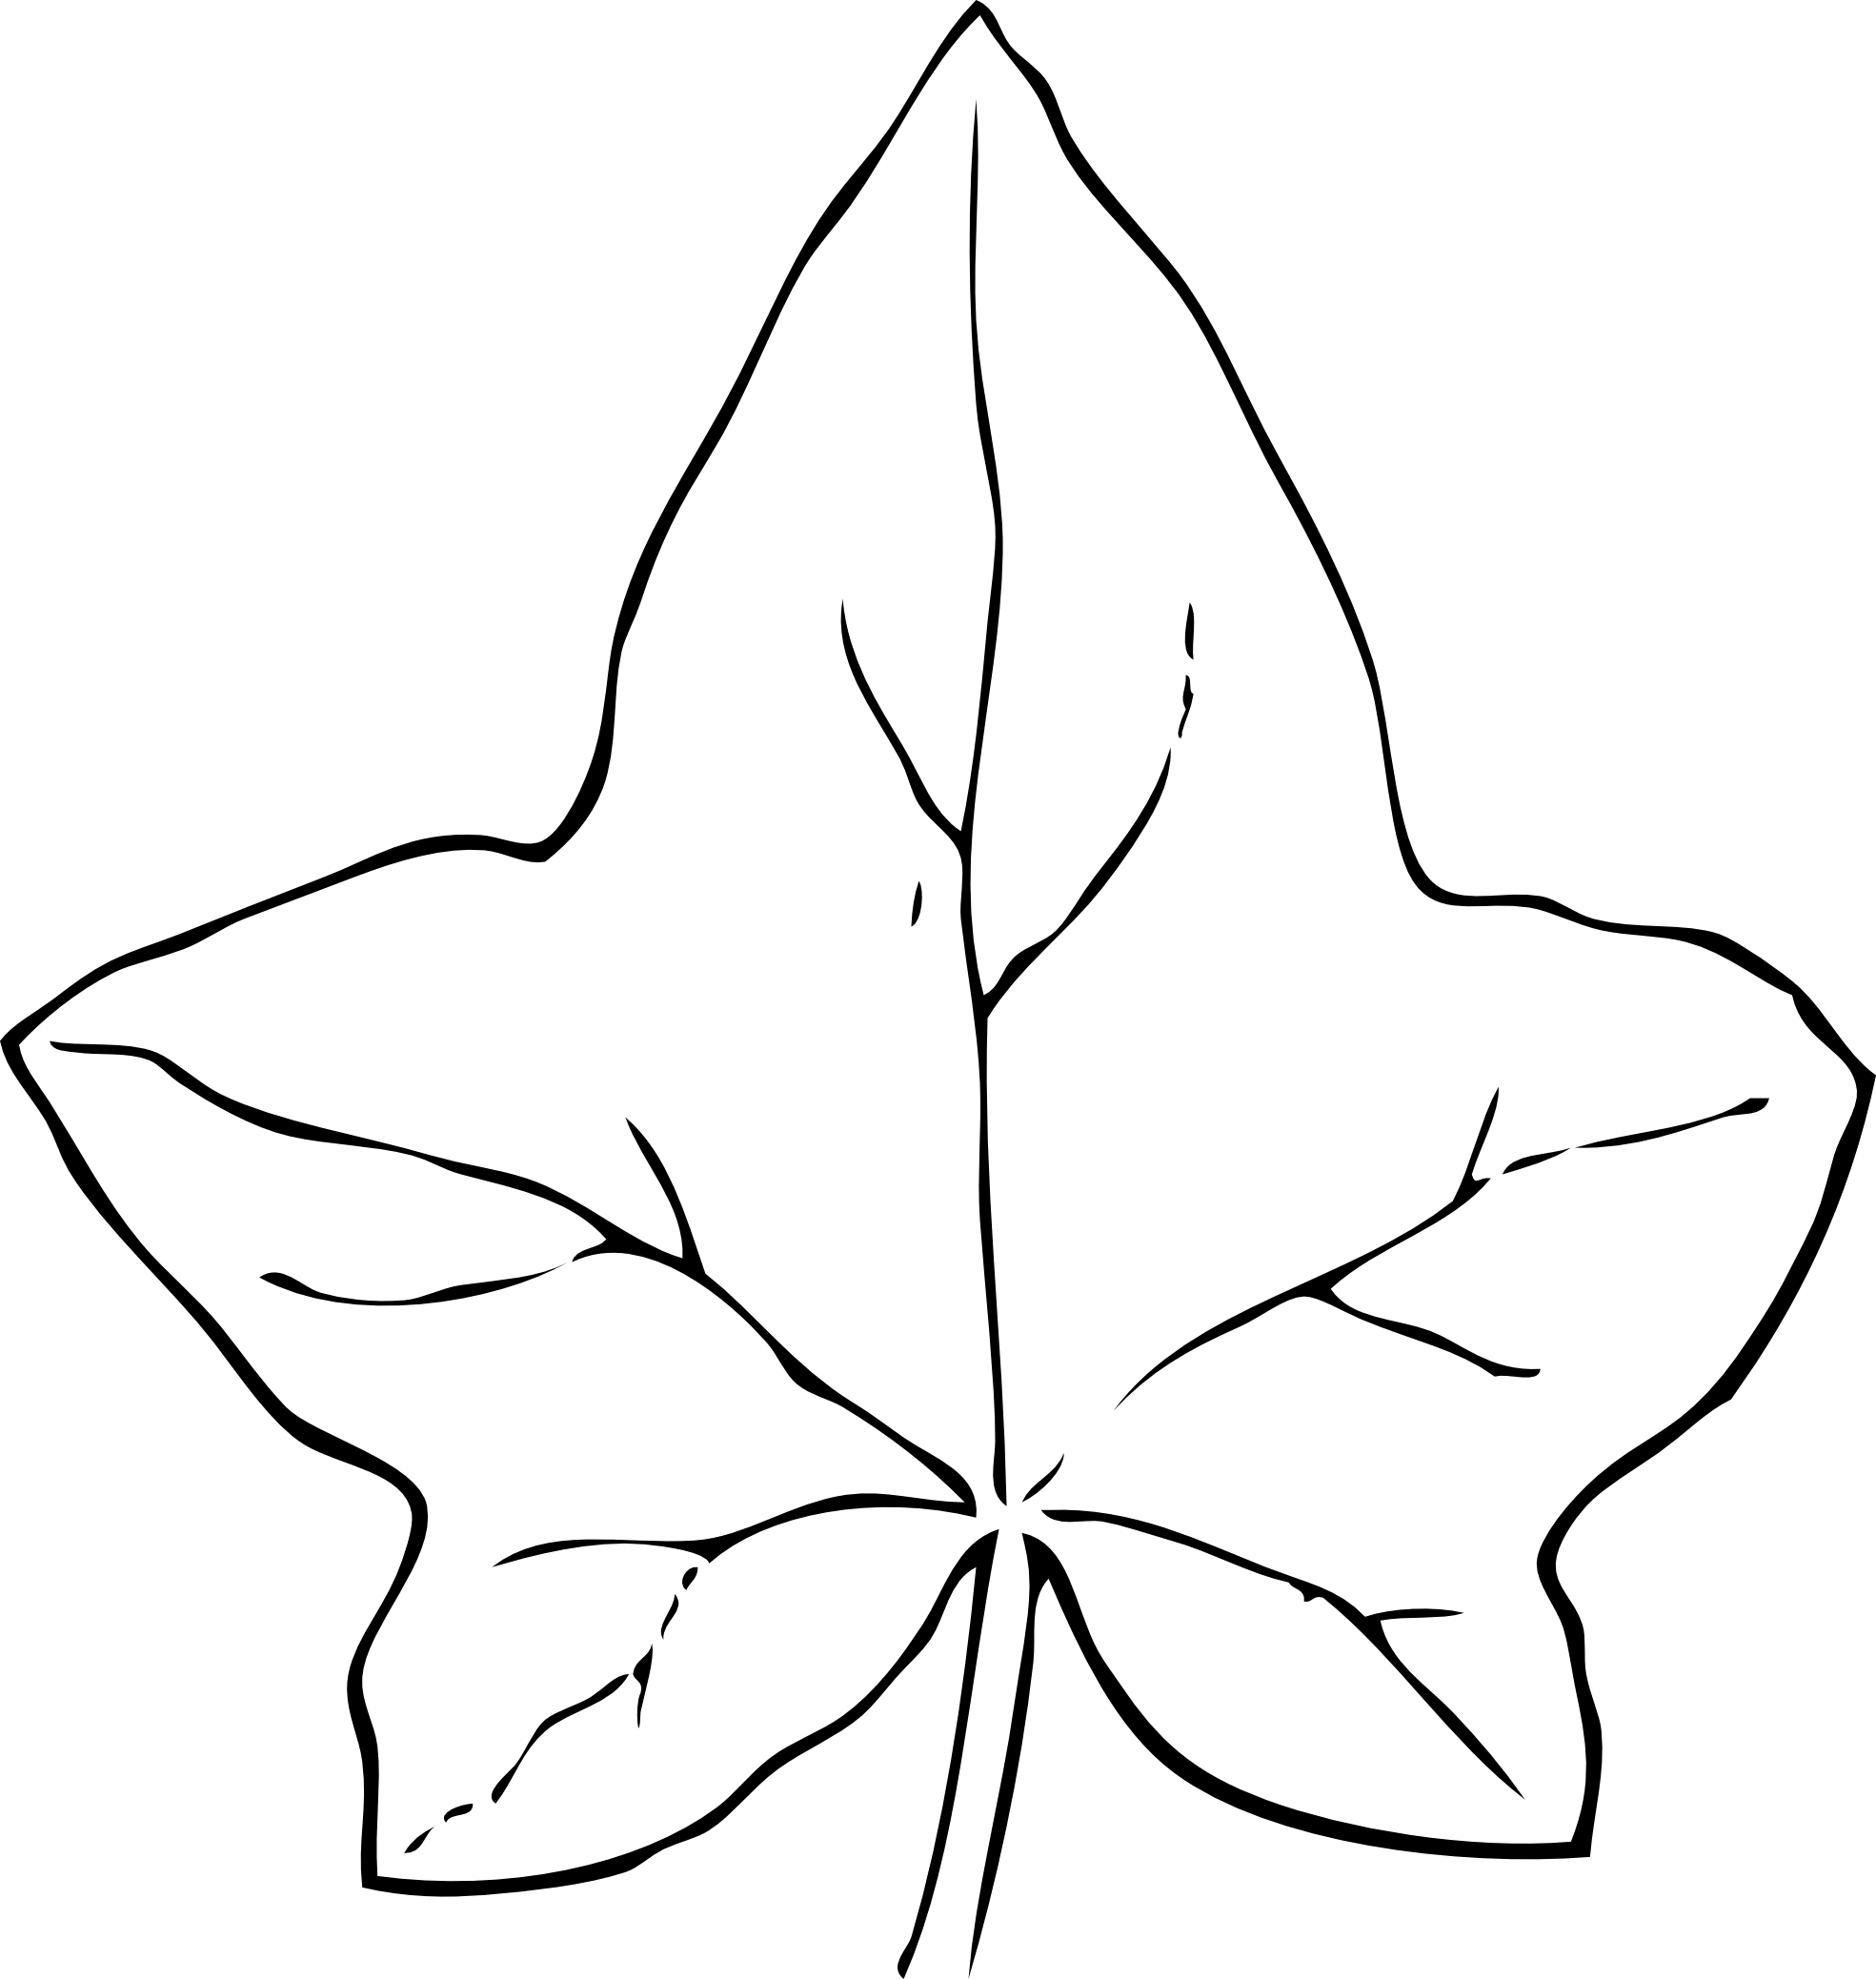 ivy leaf 2 black white line art coloring book ...